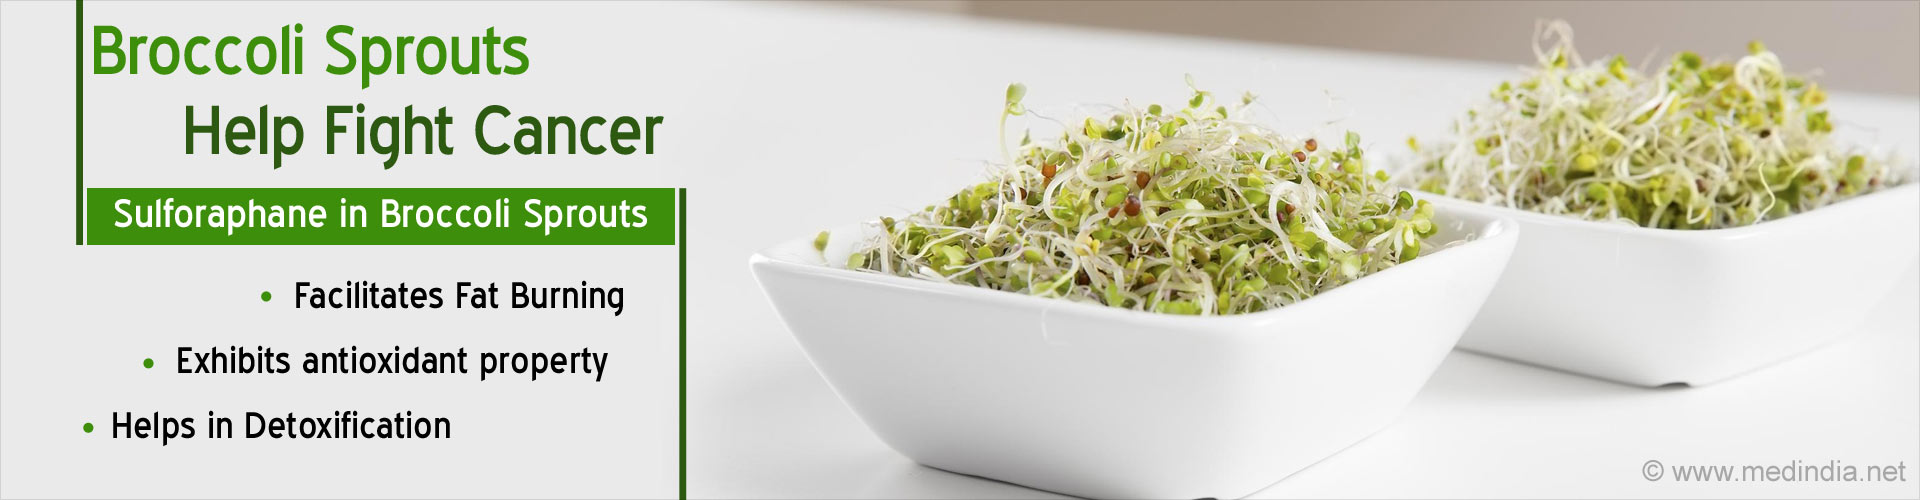 Broccoli Sprouts Help Fight Cancer